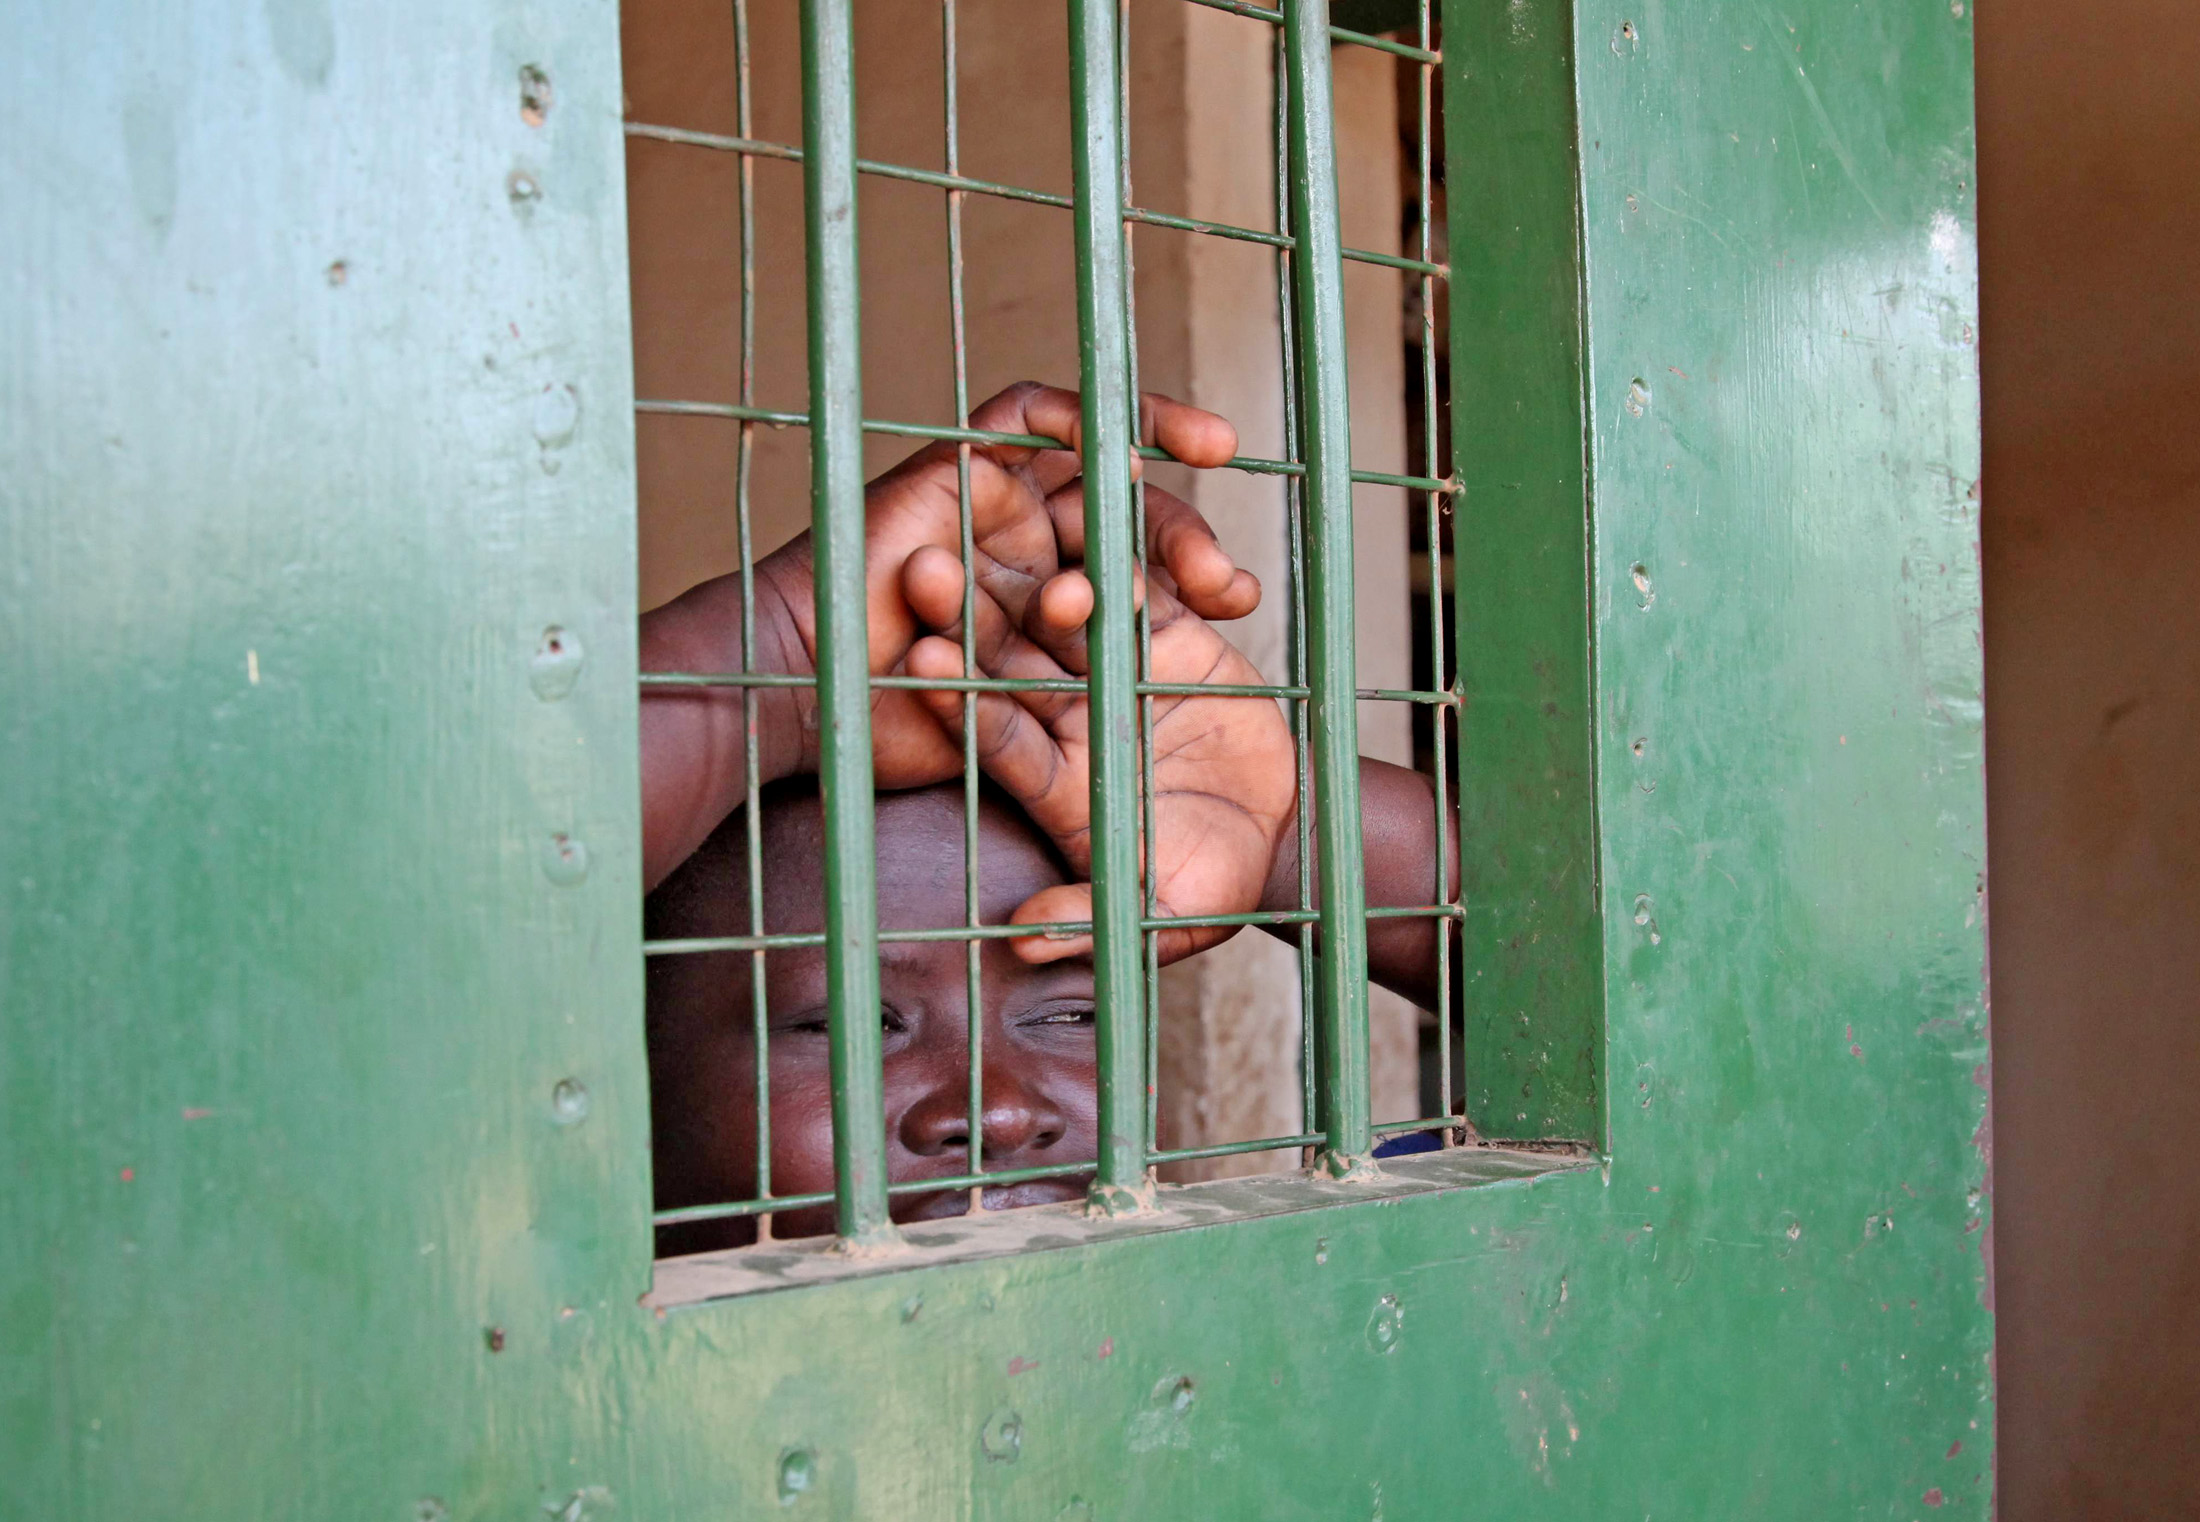 Prisoner in South Sudan